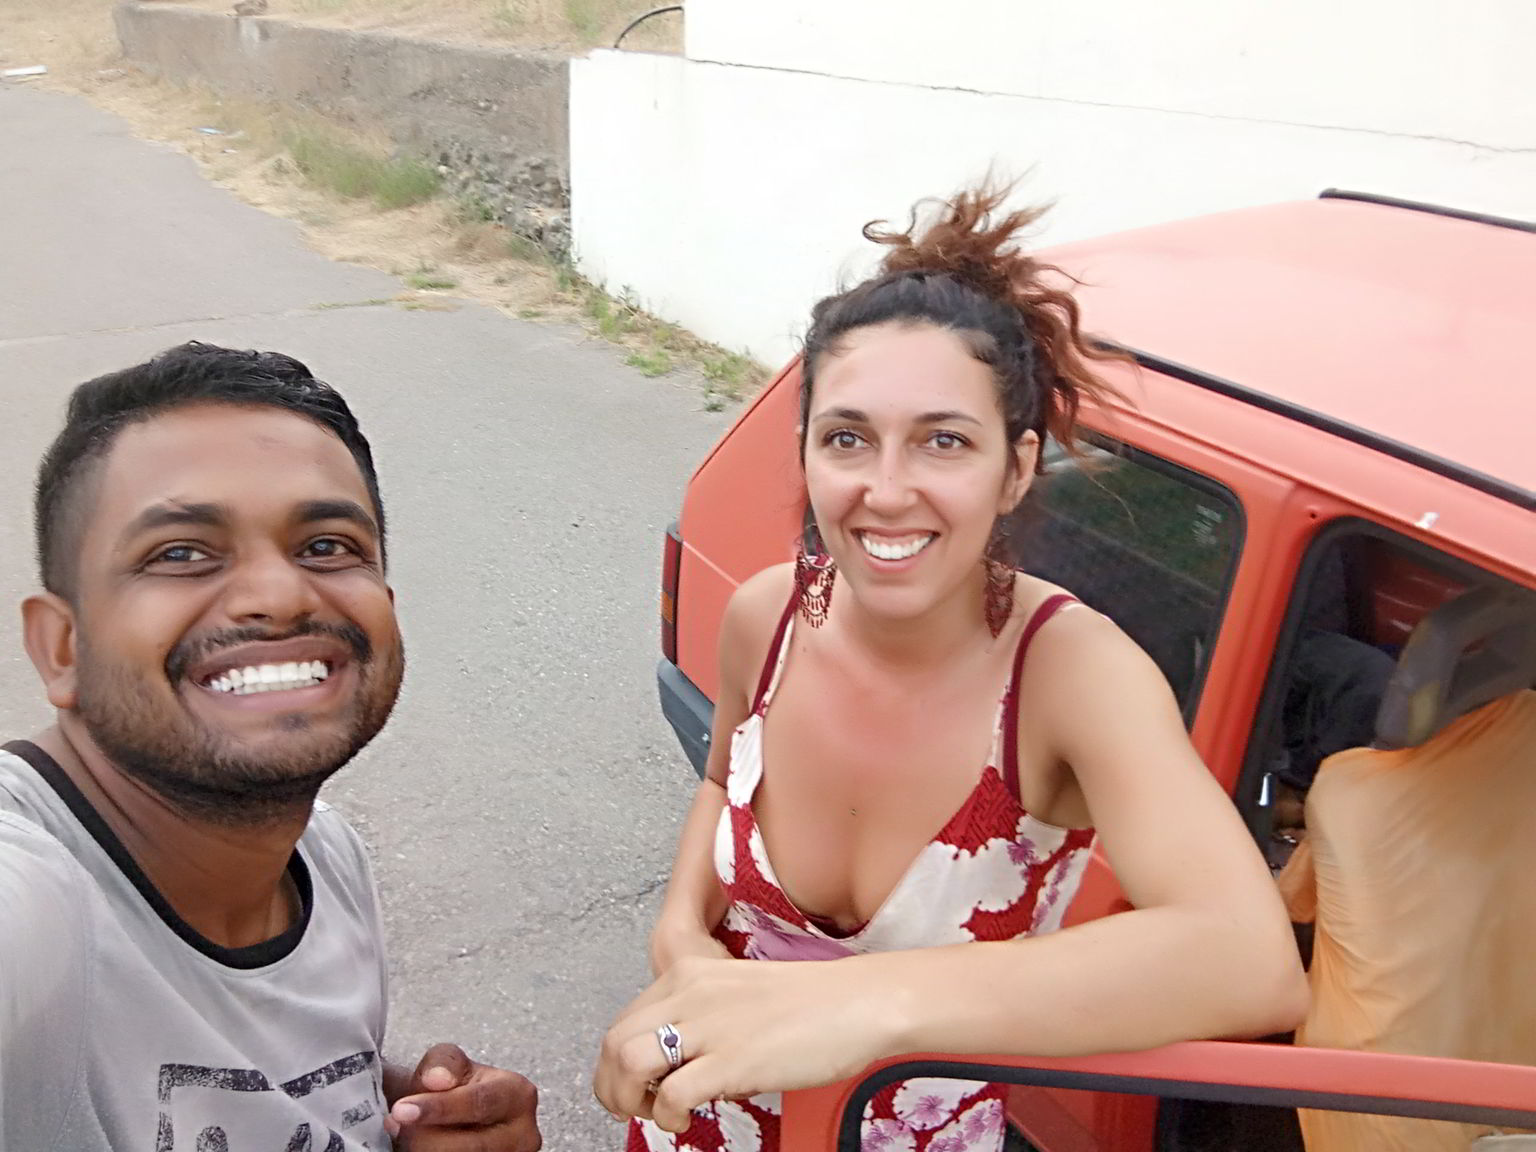 Ariel picked me up first. She spent quite some time in Latin America, and we tried our best to communicate with a mix of English, Spanish, and French